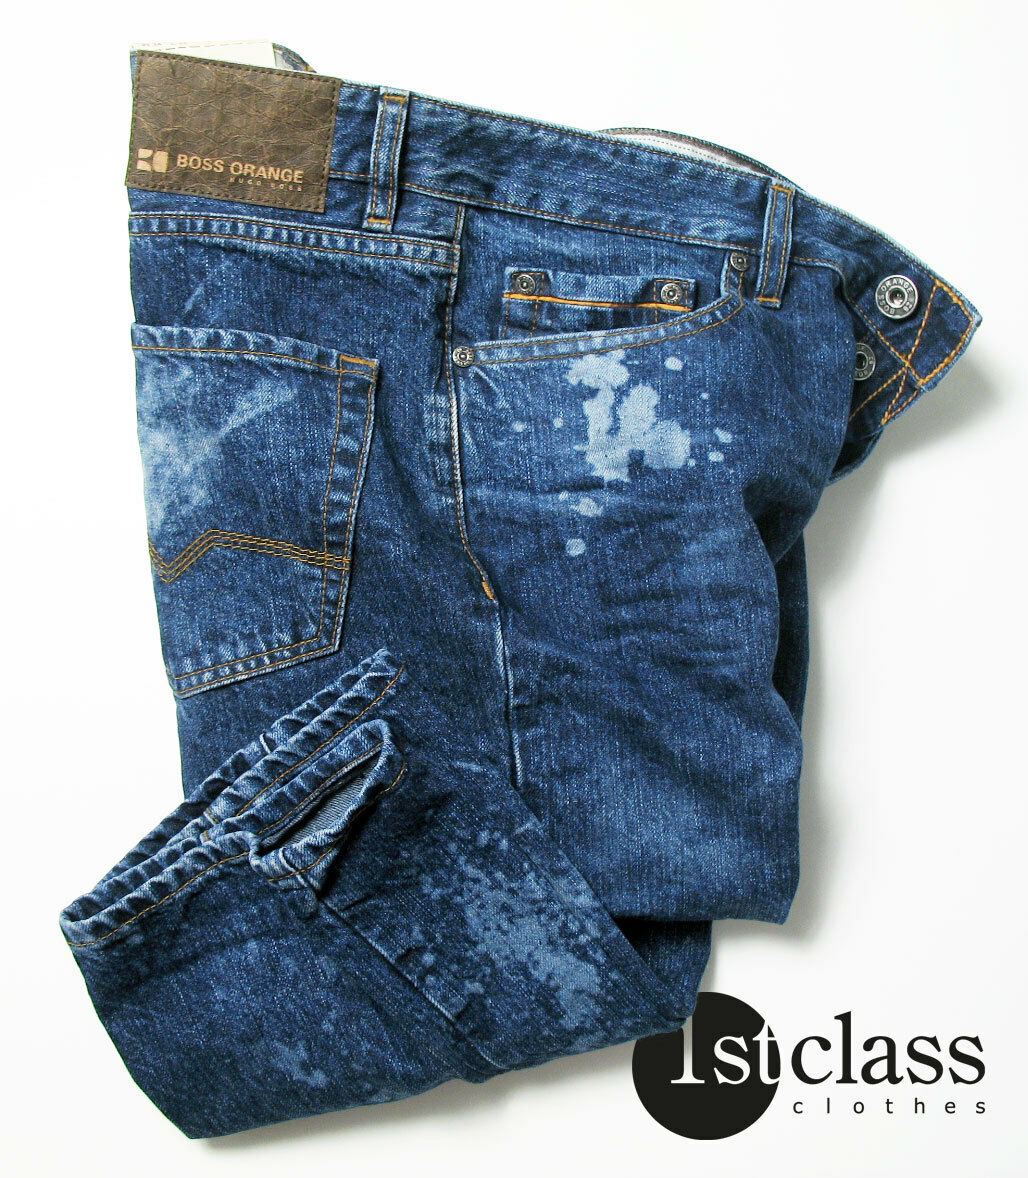 BOSS orange 25 Jeans Spot in 33 34 Regular Fit bluee ACID WASH